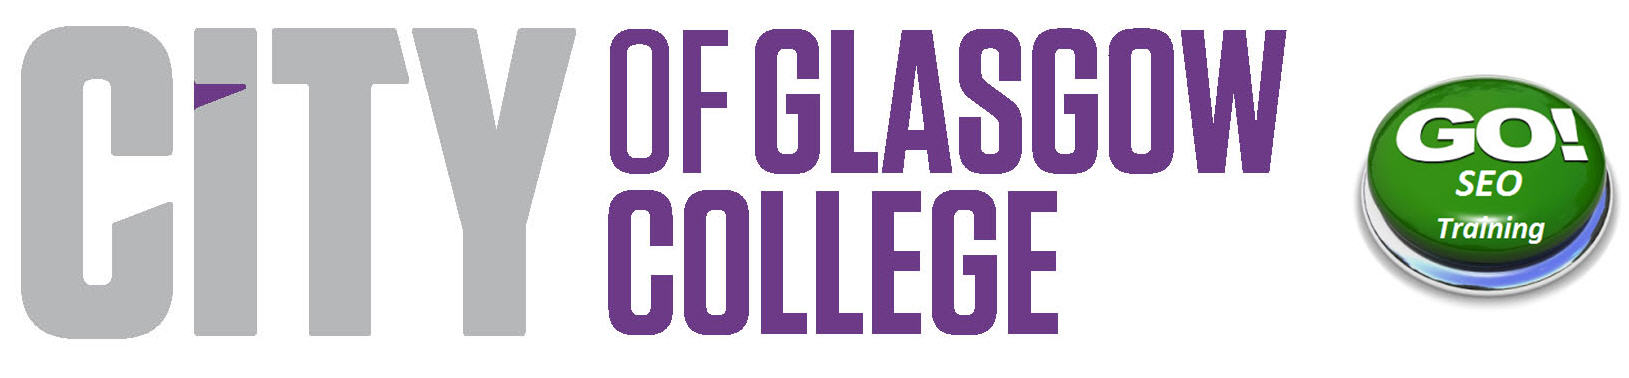 OnlineXcellence Courses City of Glasgow College